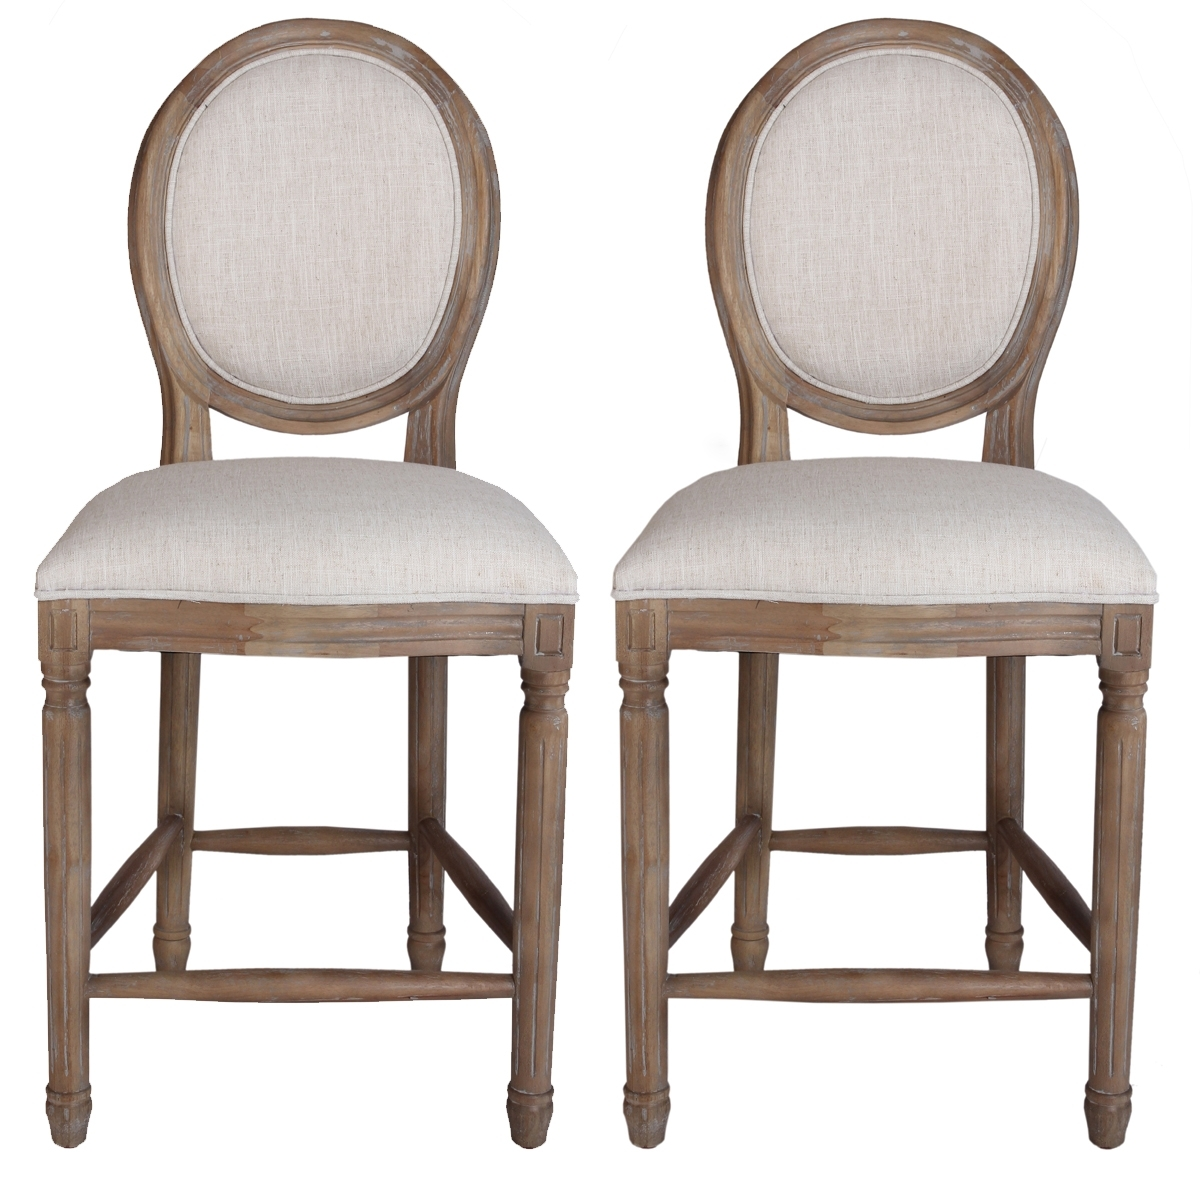 Furniture: French Country Bar Stools For Your Home Bar Or Kitchen With French Country Counter Stools (View 14 of 20)